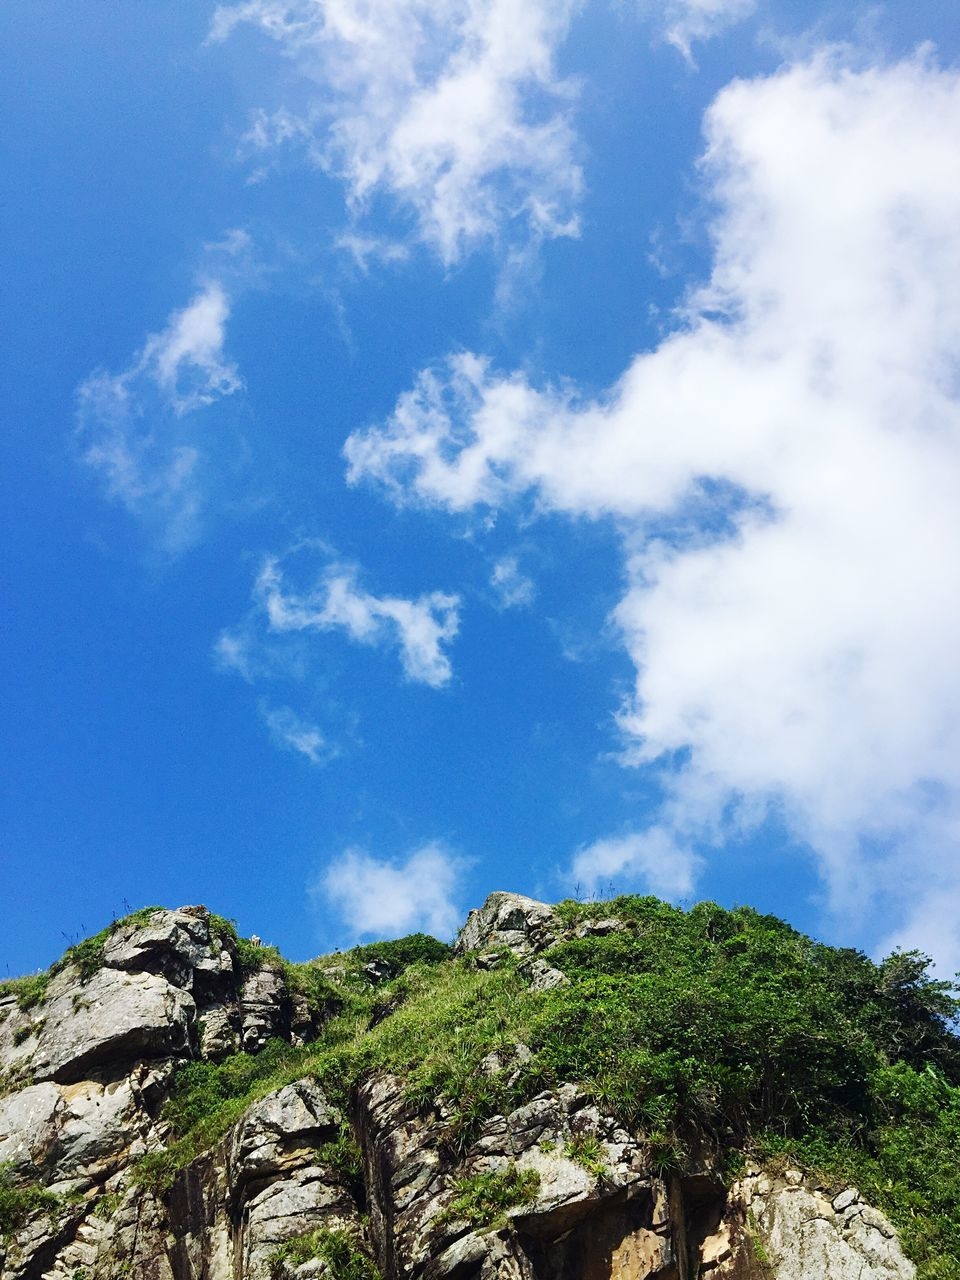 blue, beauty in nature, sky, nature, day, scenics, tranquility, cloud - sky, low angle view, tranquil scene, no people, outdoors, rock - object, mountain, tree